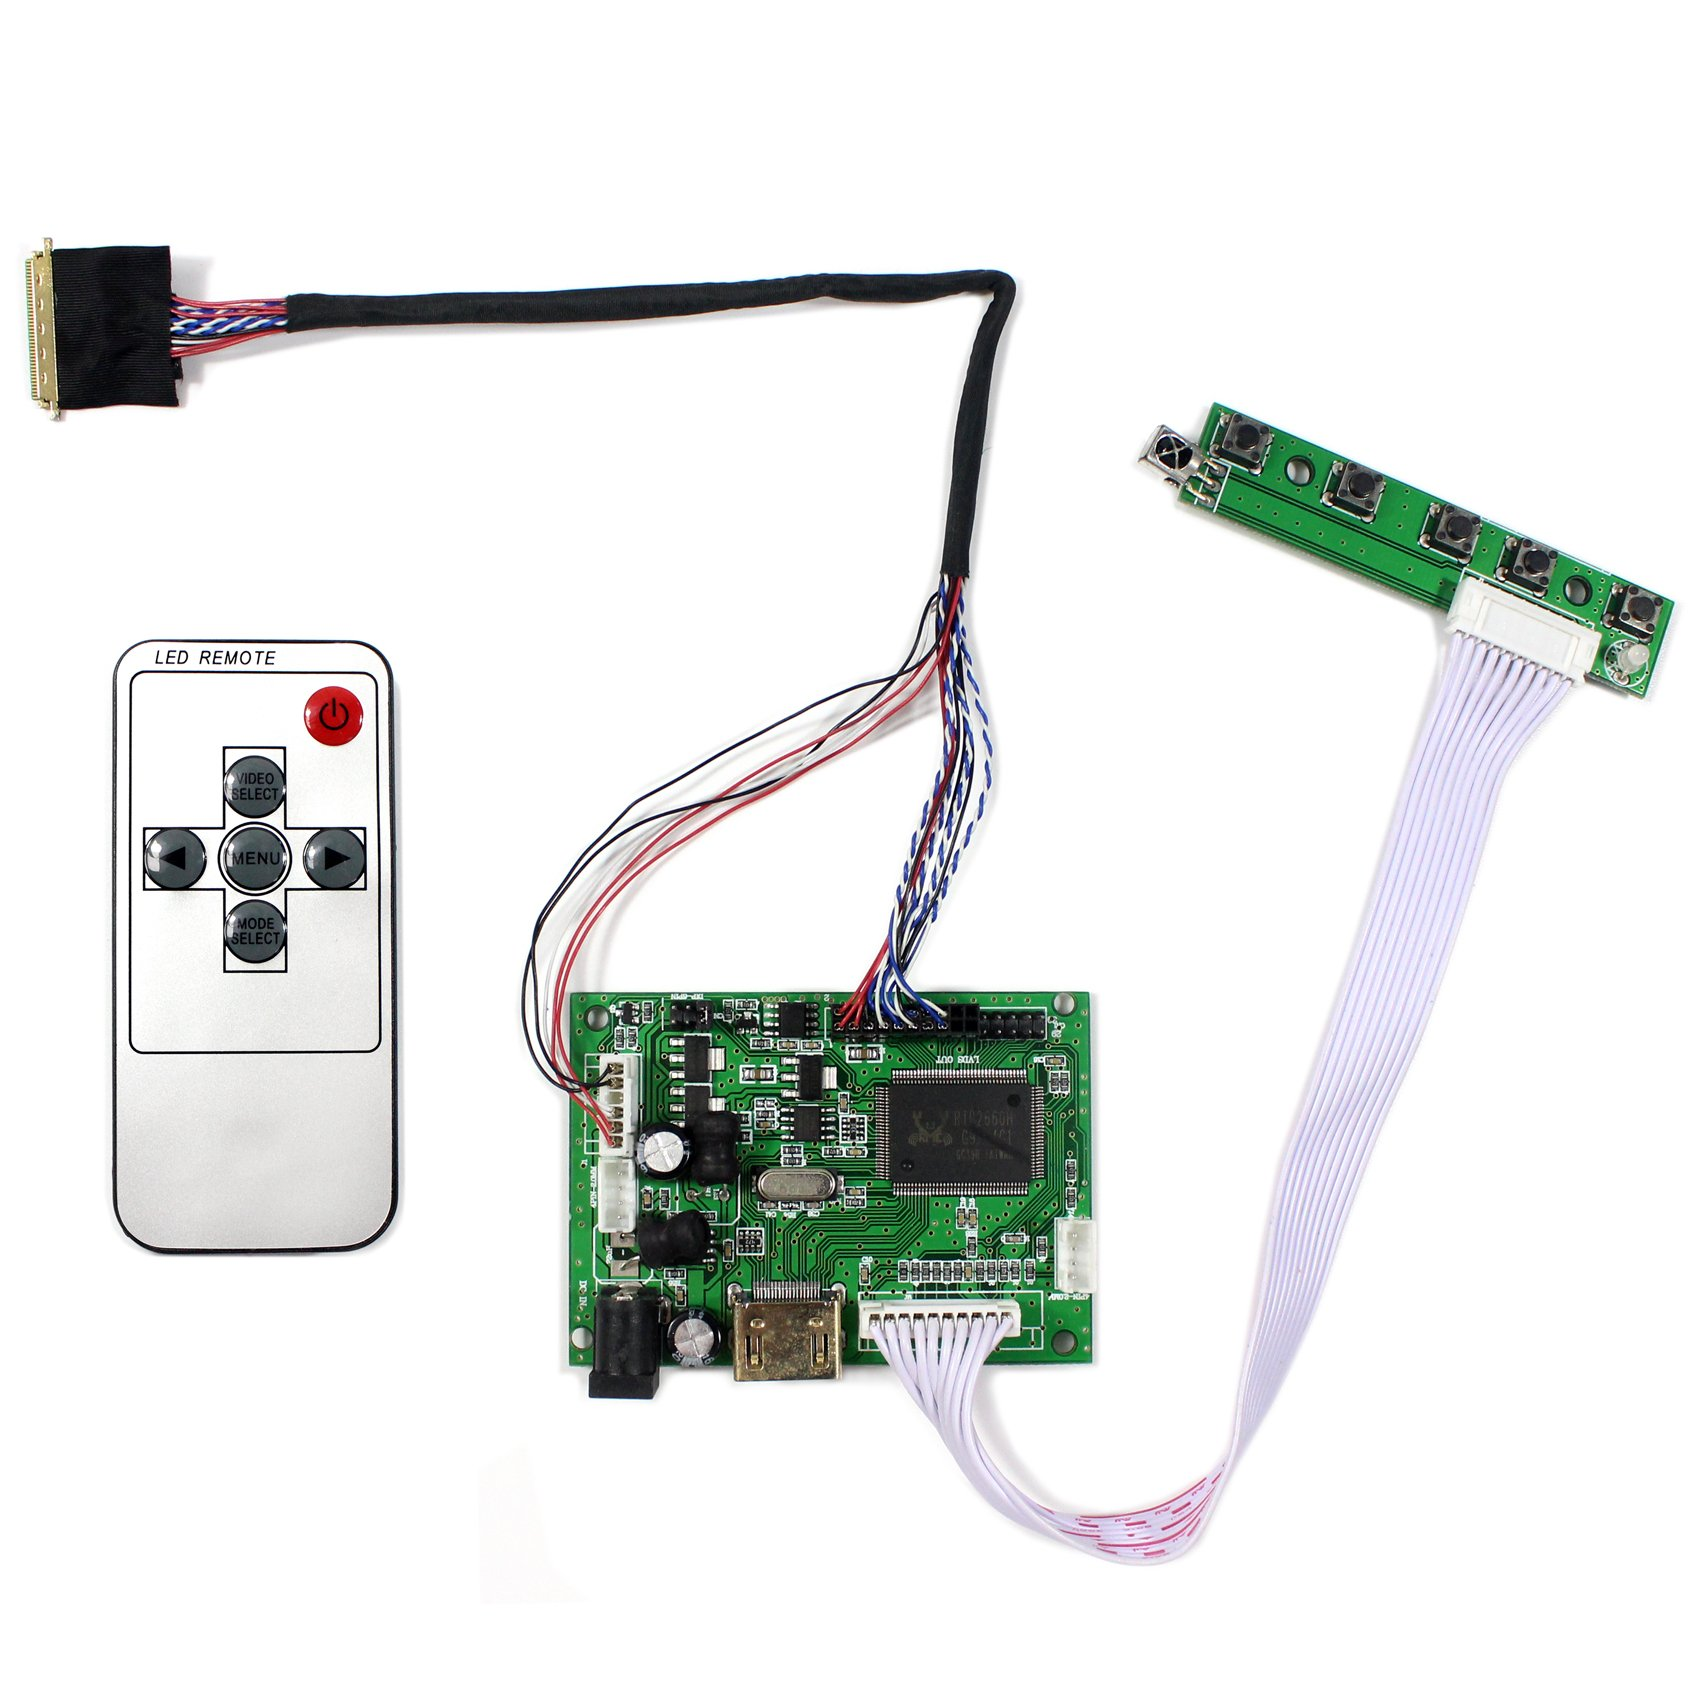 VSDISPLAY HDMI LCD Controller Board Work For 14'' 15.6'' LTN140AT02 LP156WH4 B156XW02 1366x768 40Pin LCD Panel